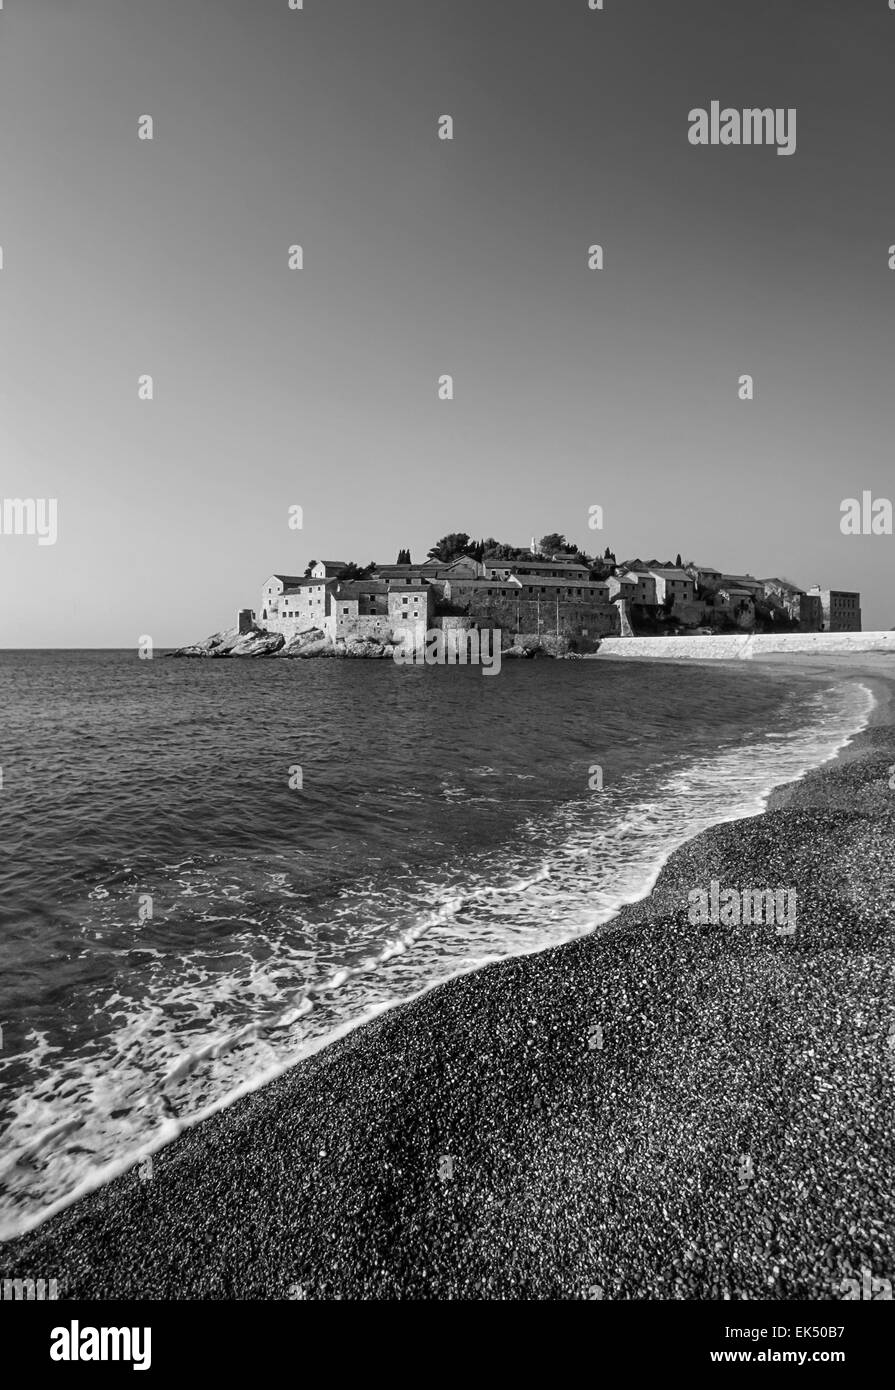 Montenegro, Adriatic Sea, view of the coastline and Sveti Stefan Island - FILM SCAN - Stock Image